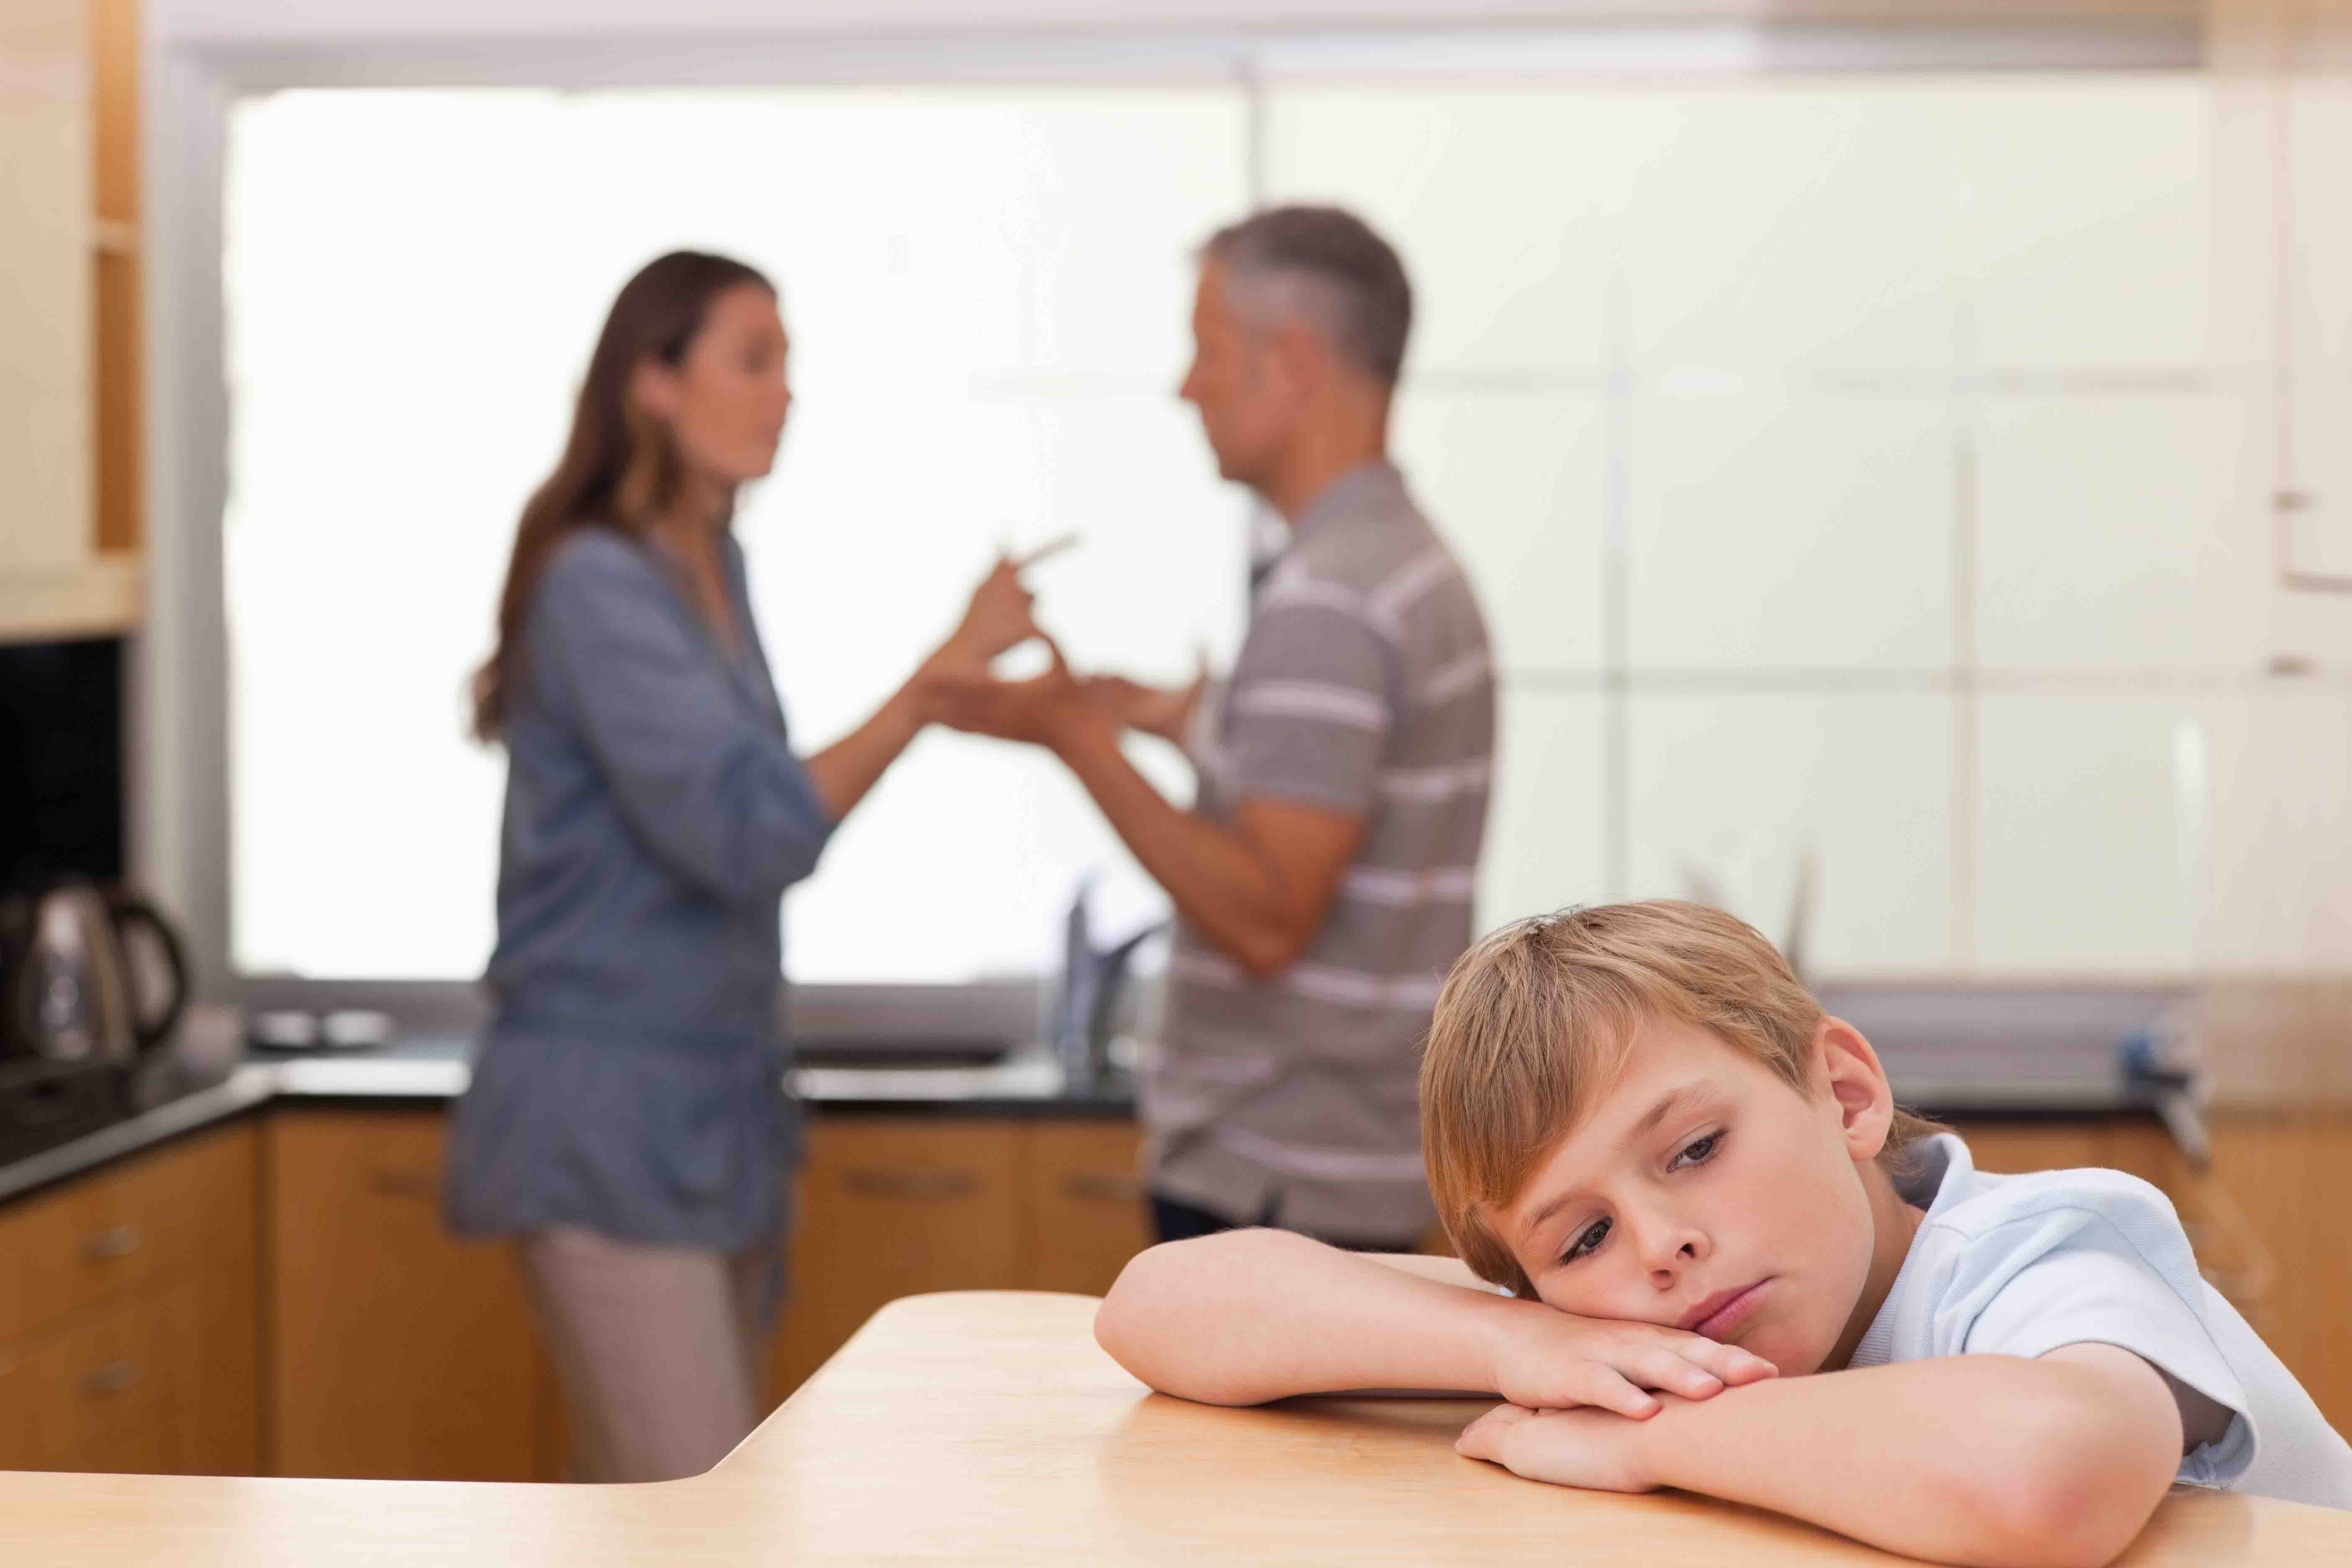 family and child law negotiation Joselowitz & andrews attorneys is a commercial and family law firm in houghton, johannesburg our specialist legal services have made us the preferred partner in matters relating to family mediation, child custody and parenting plans.